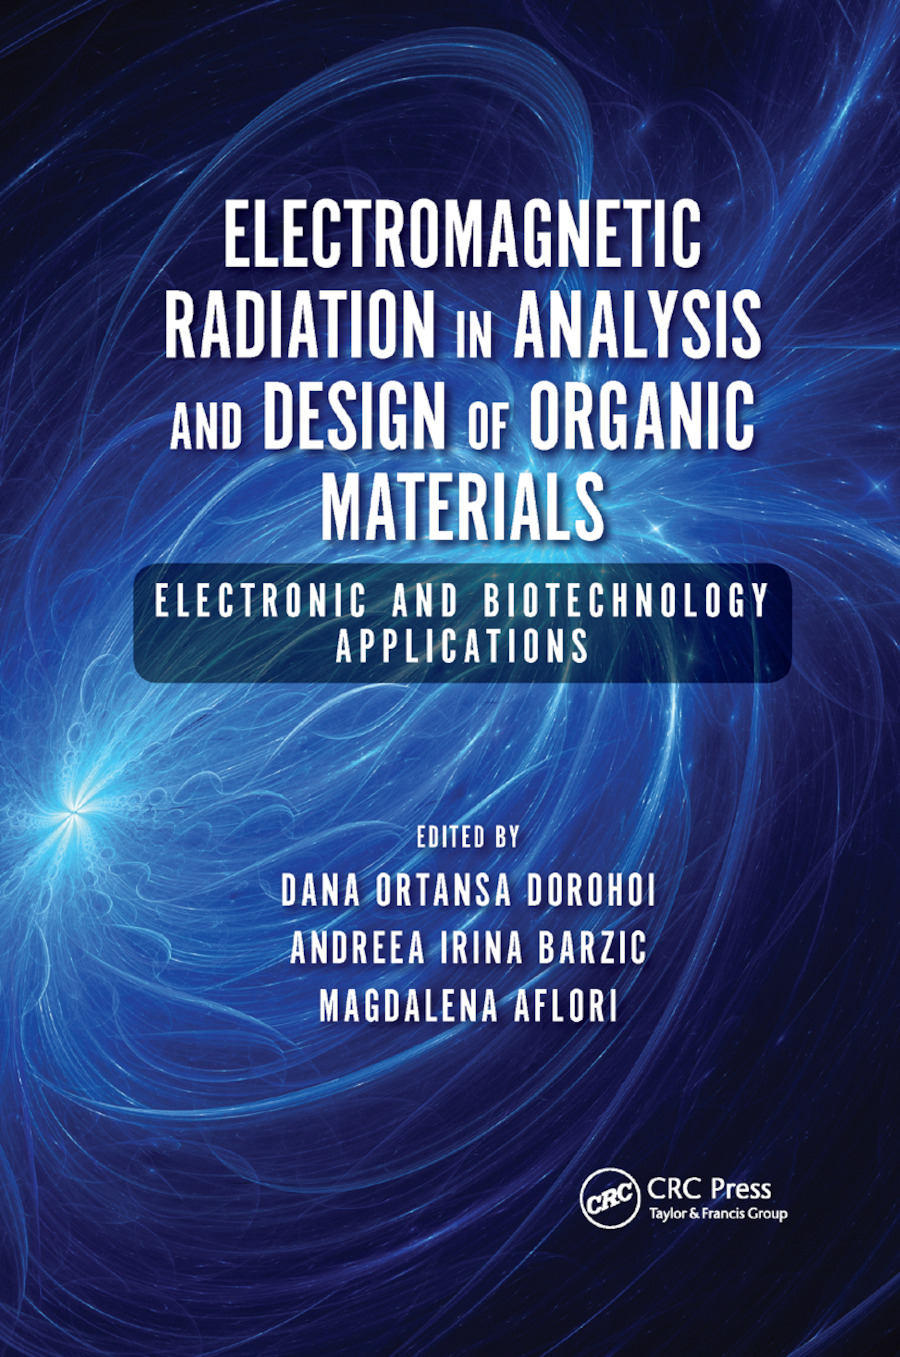 Electromagnetic Radiation in Analysis and Design of Organic Materials: Electronic and Biotechnology Applications book cover